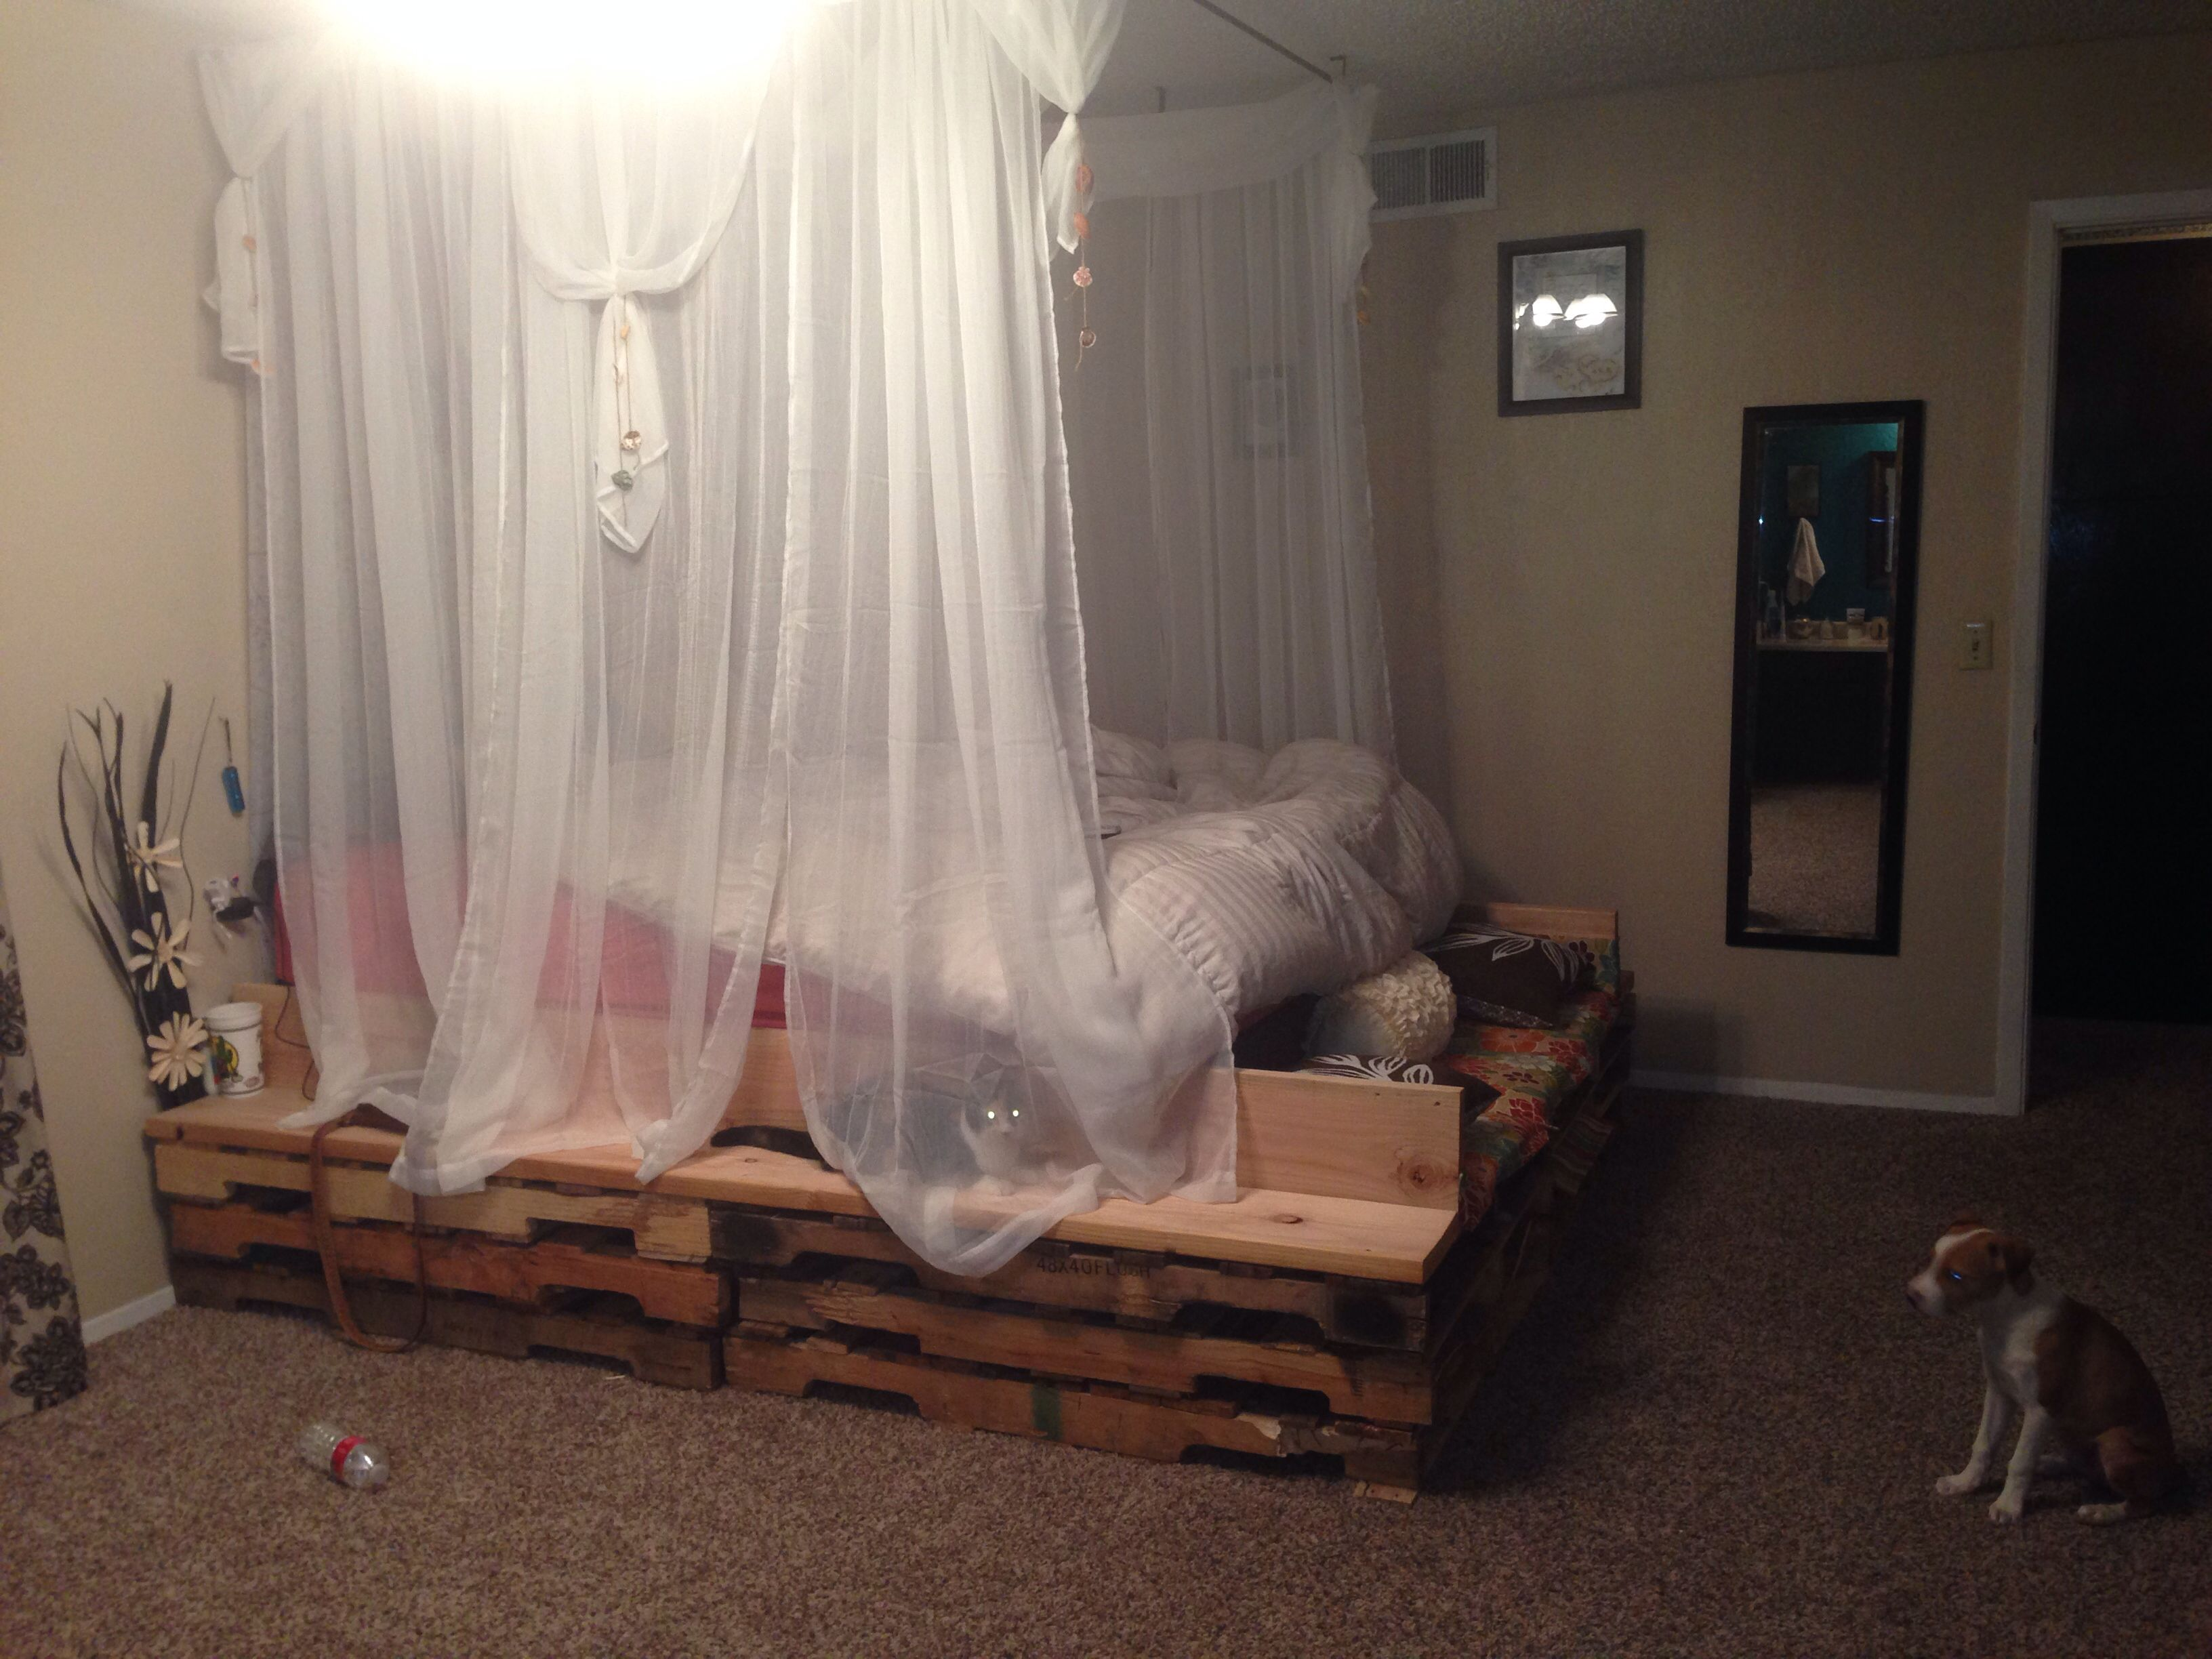 Bed Canopy Diy Diy Pallet Bed Canopy Apartment Pinterest Diy Pallet Bed